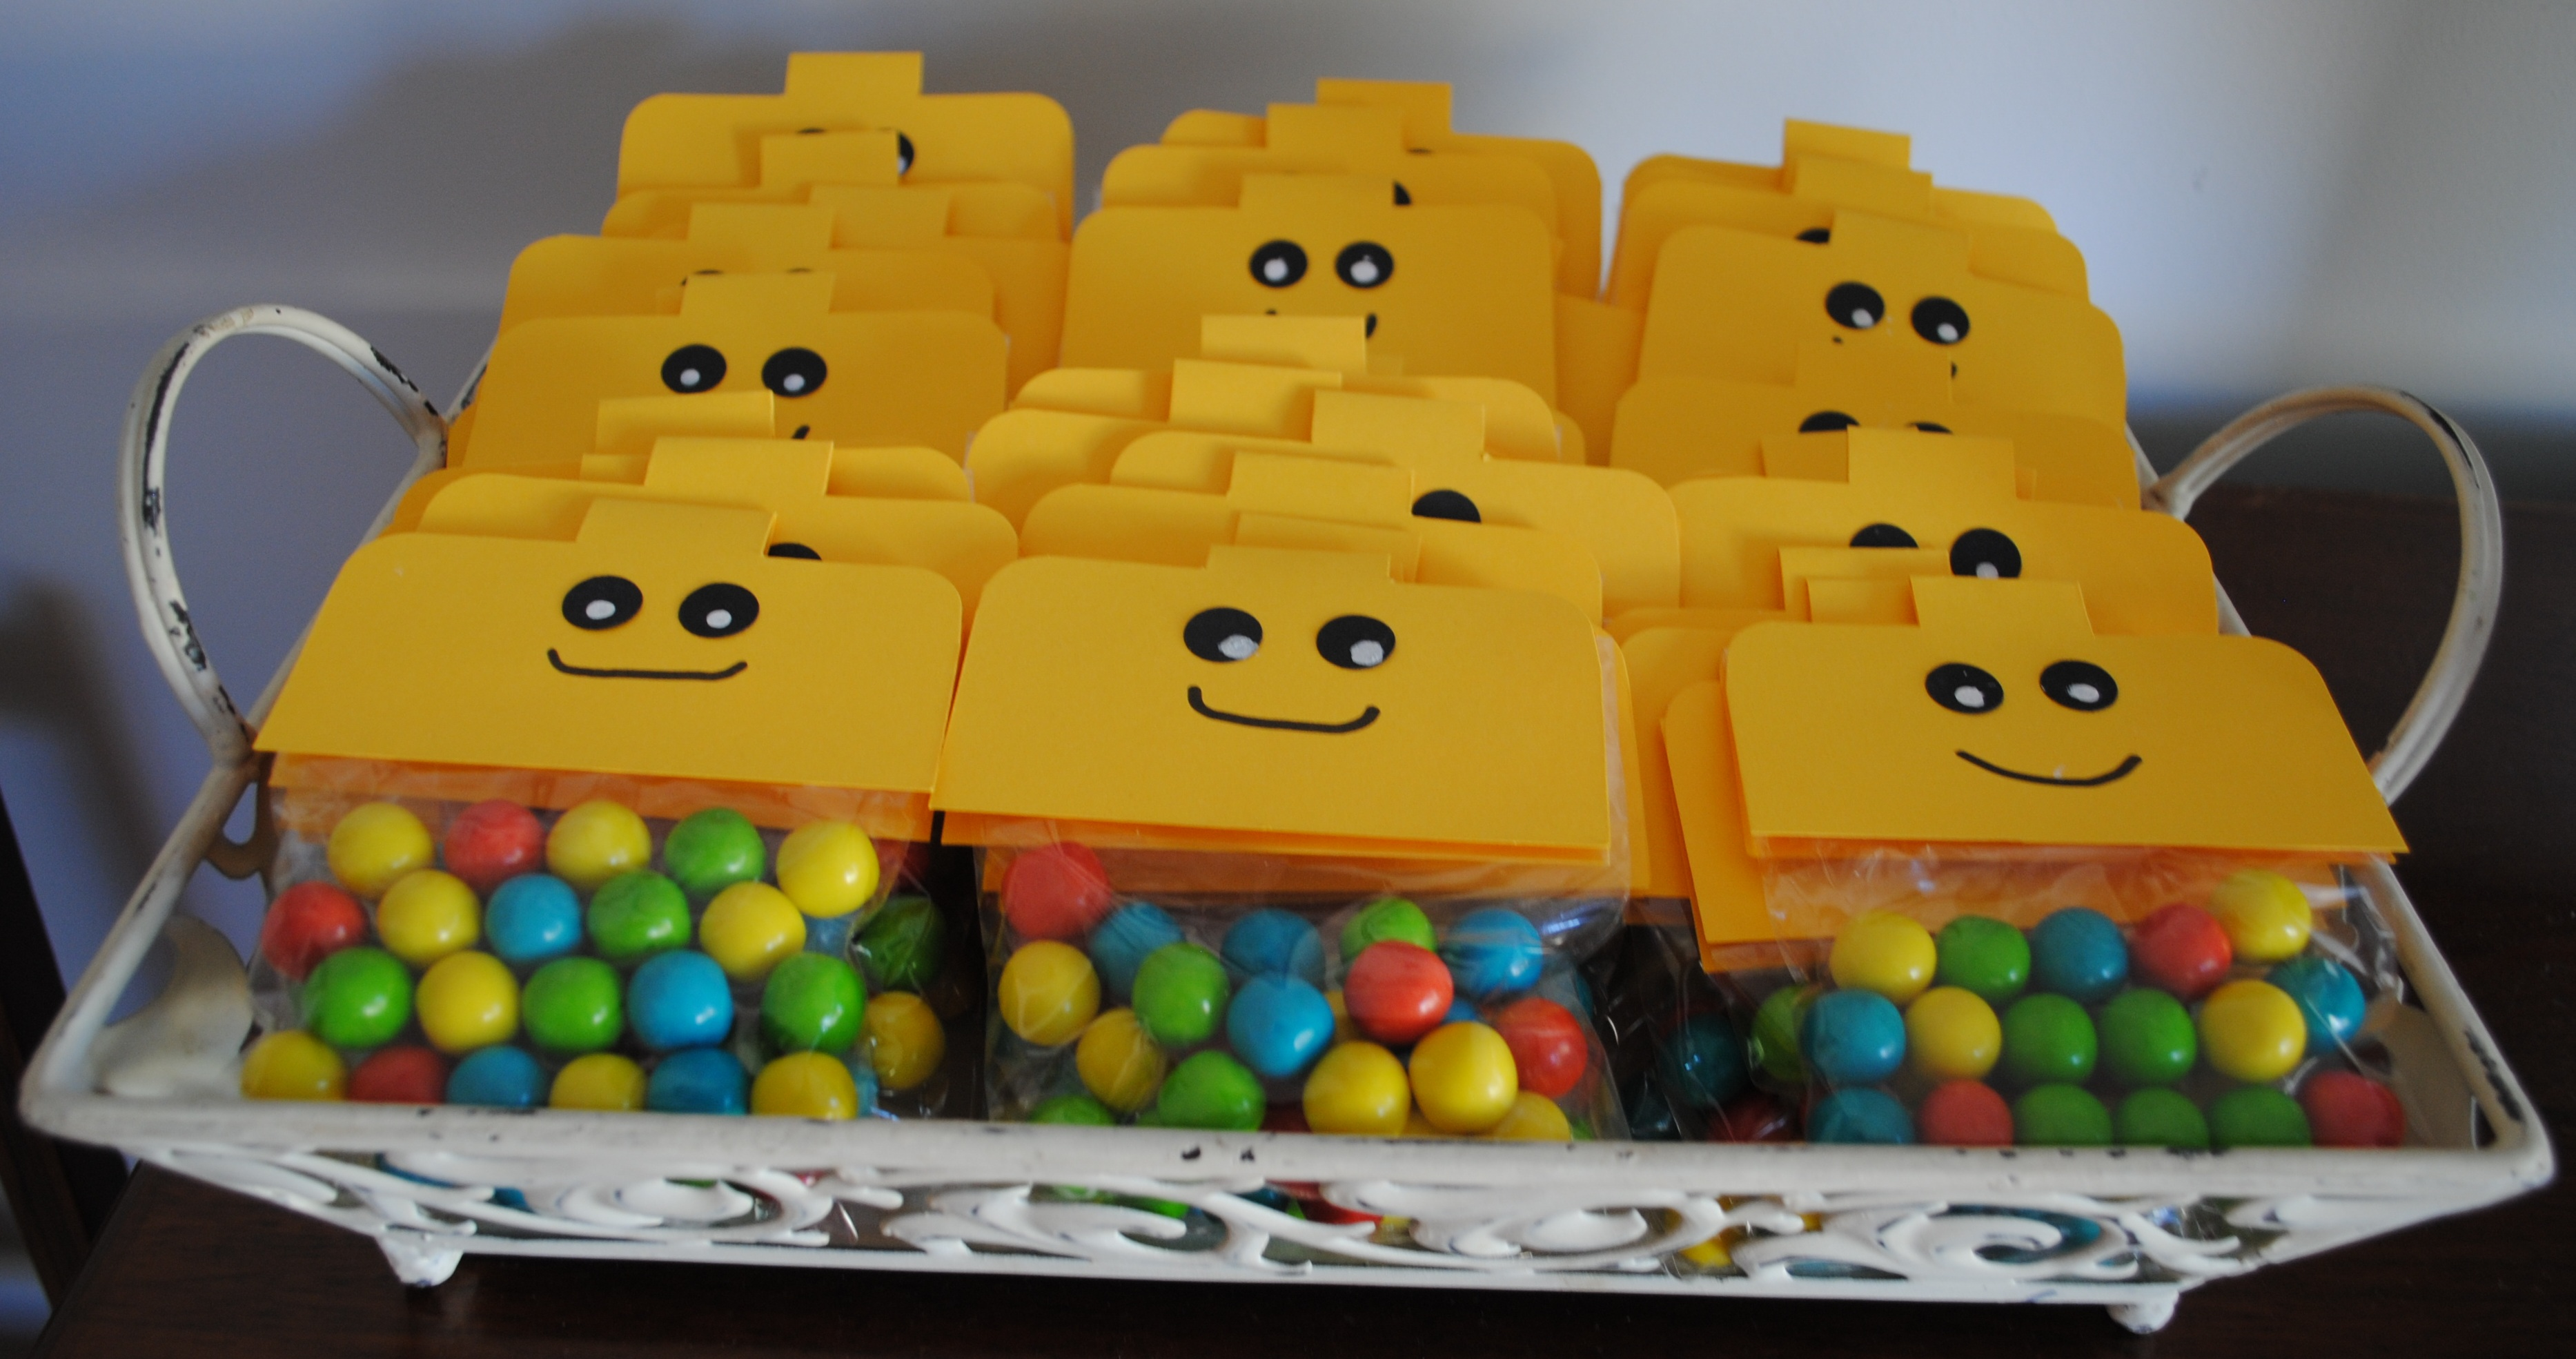 Oscar s lego party thecreativemummy for Decoration lego